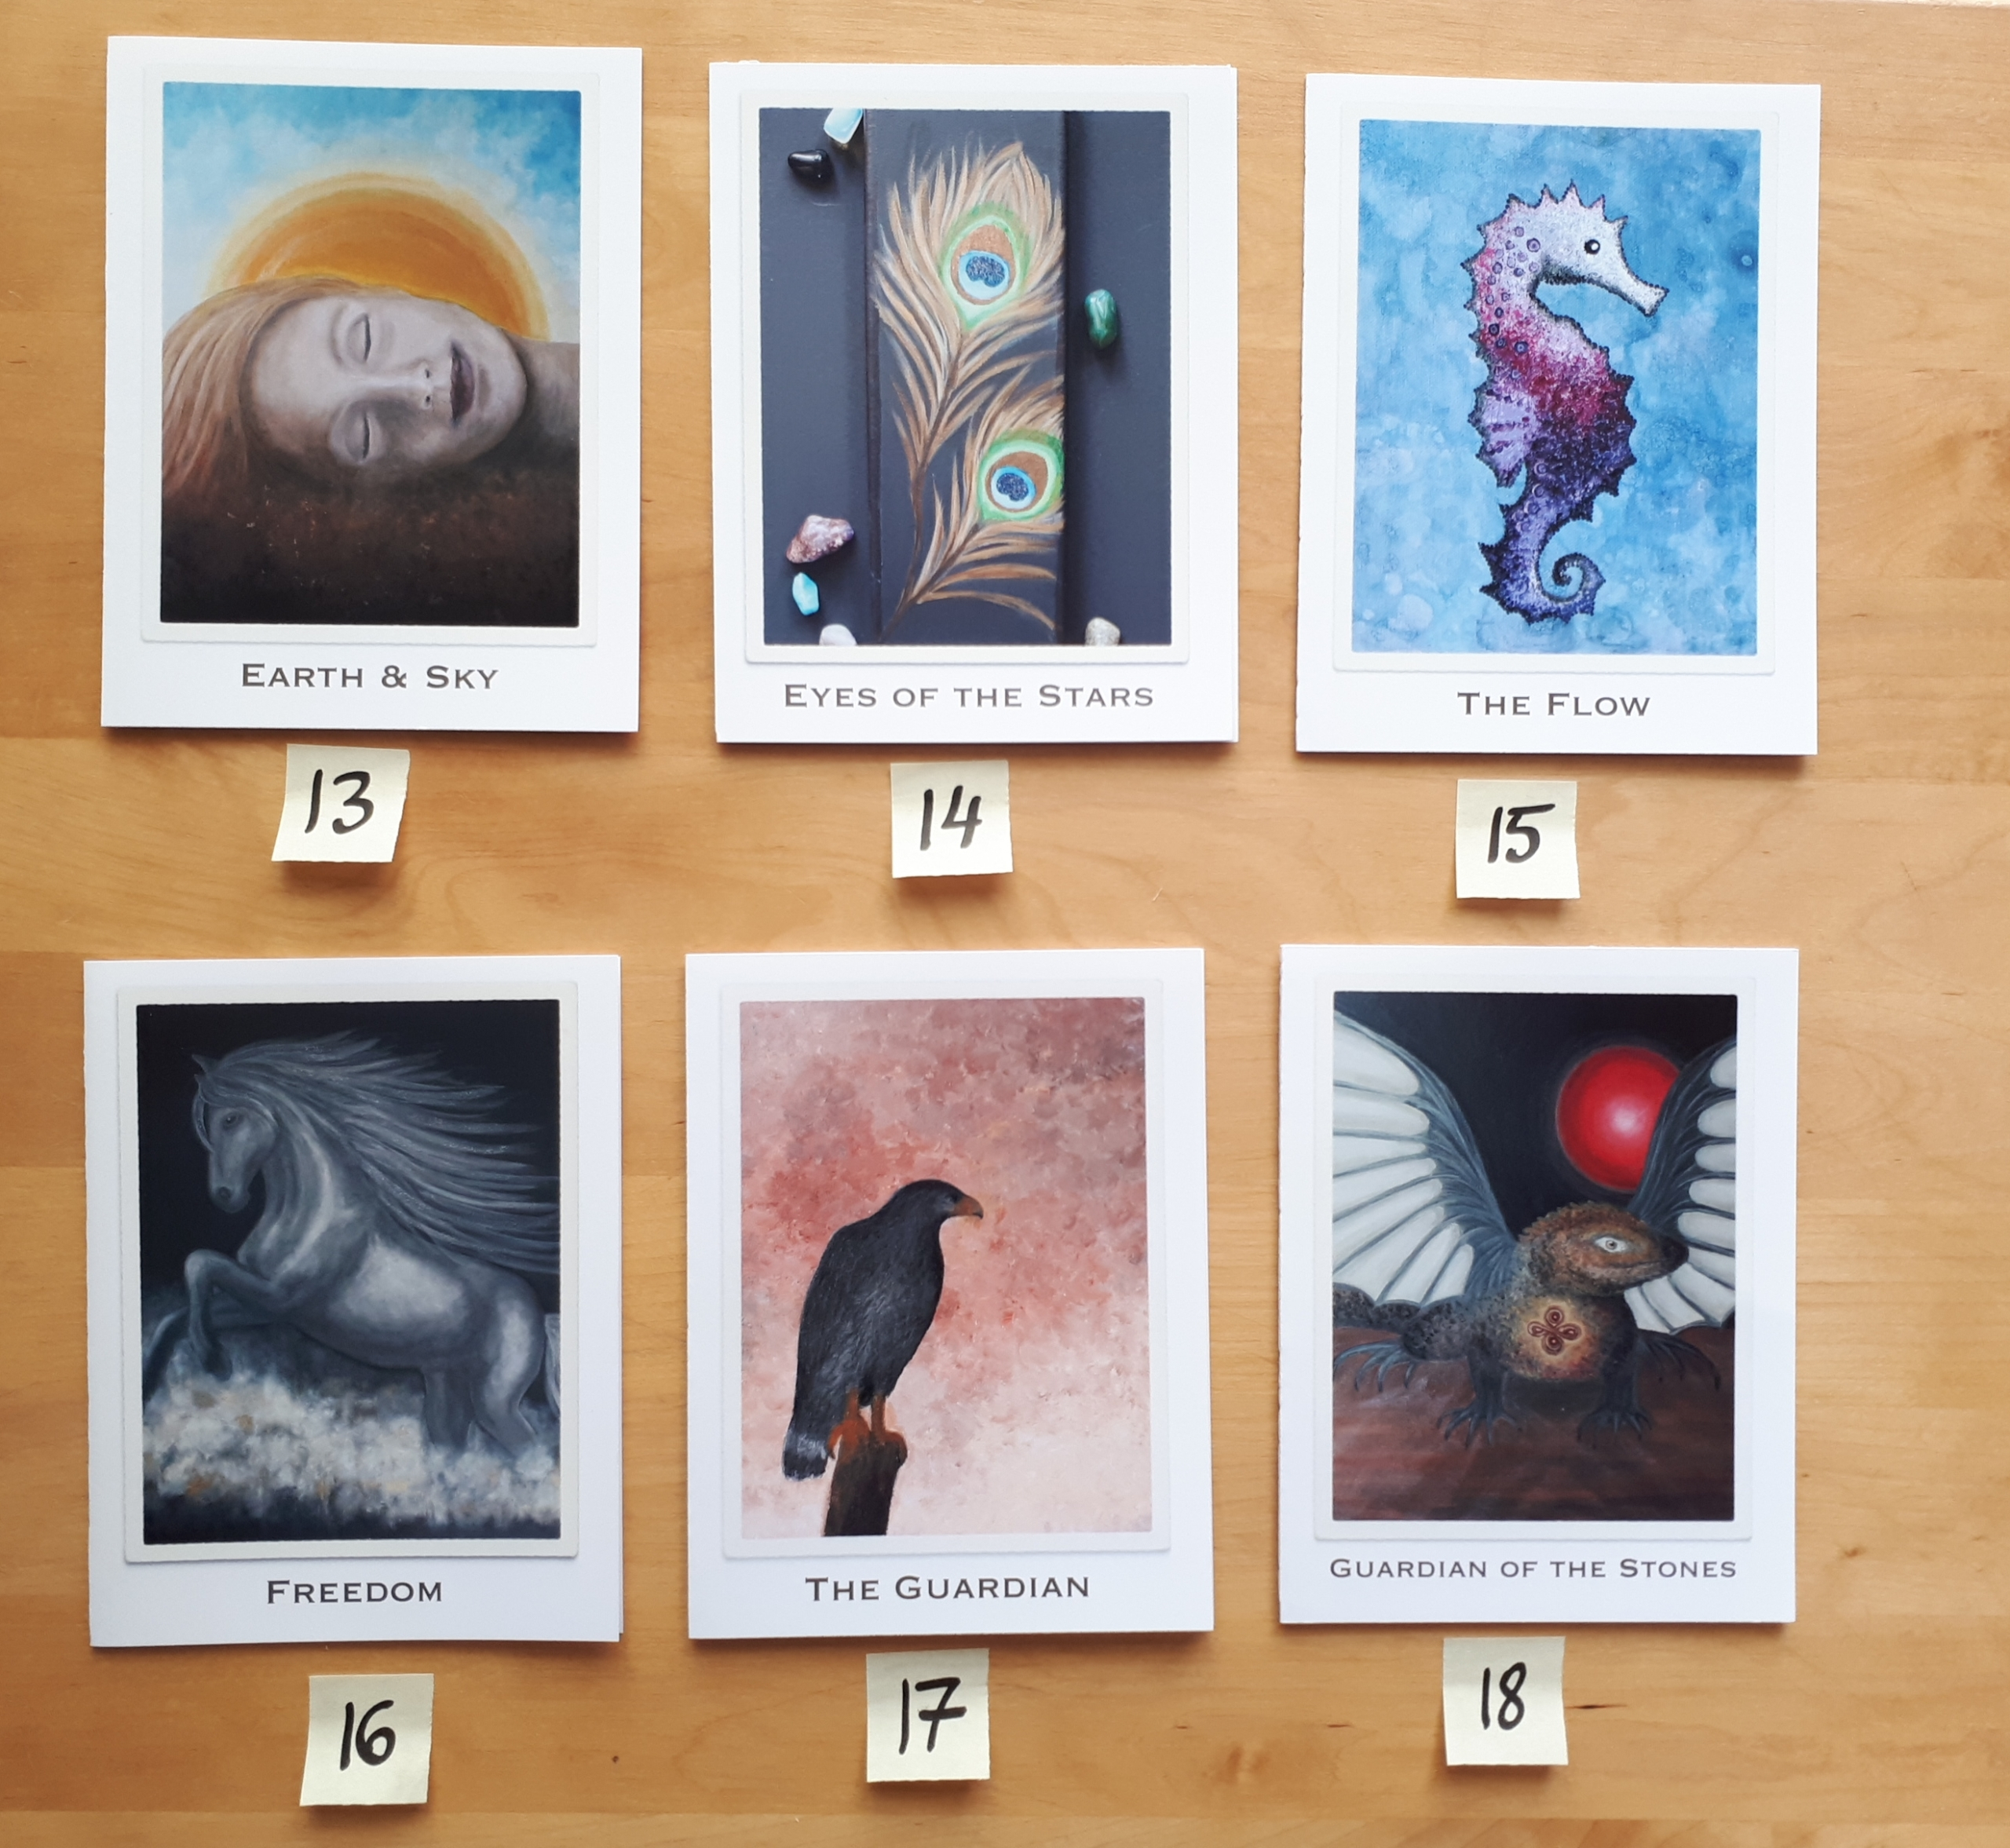 Designs 13 to 18